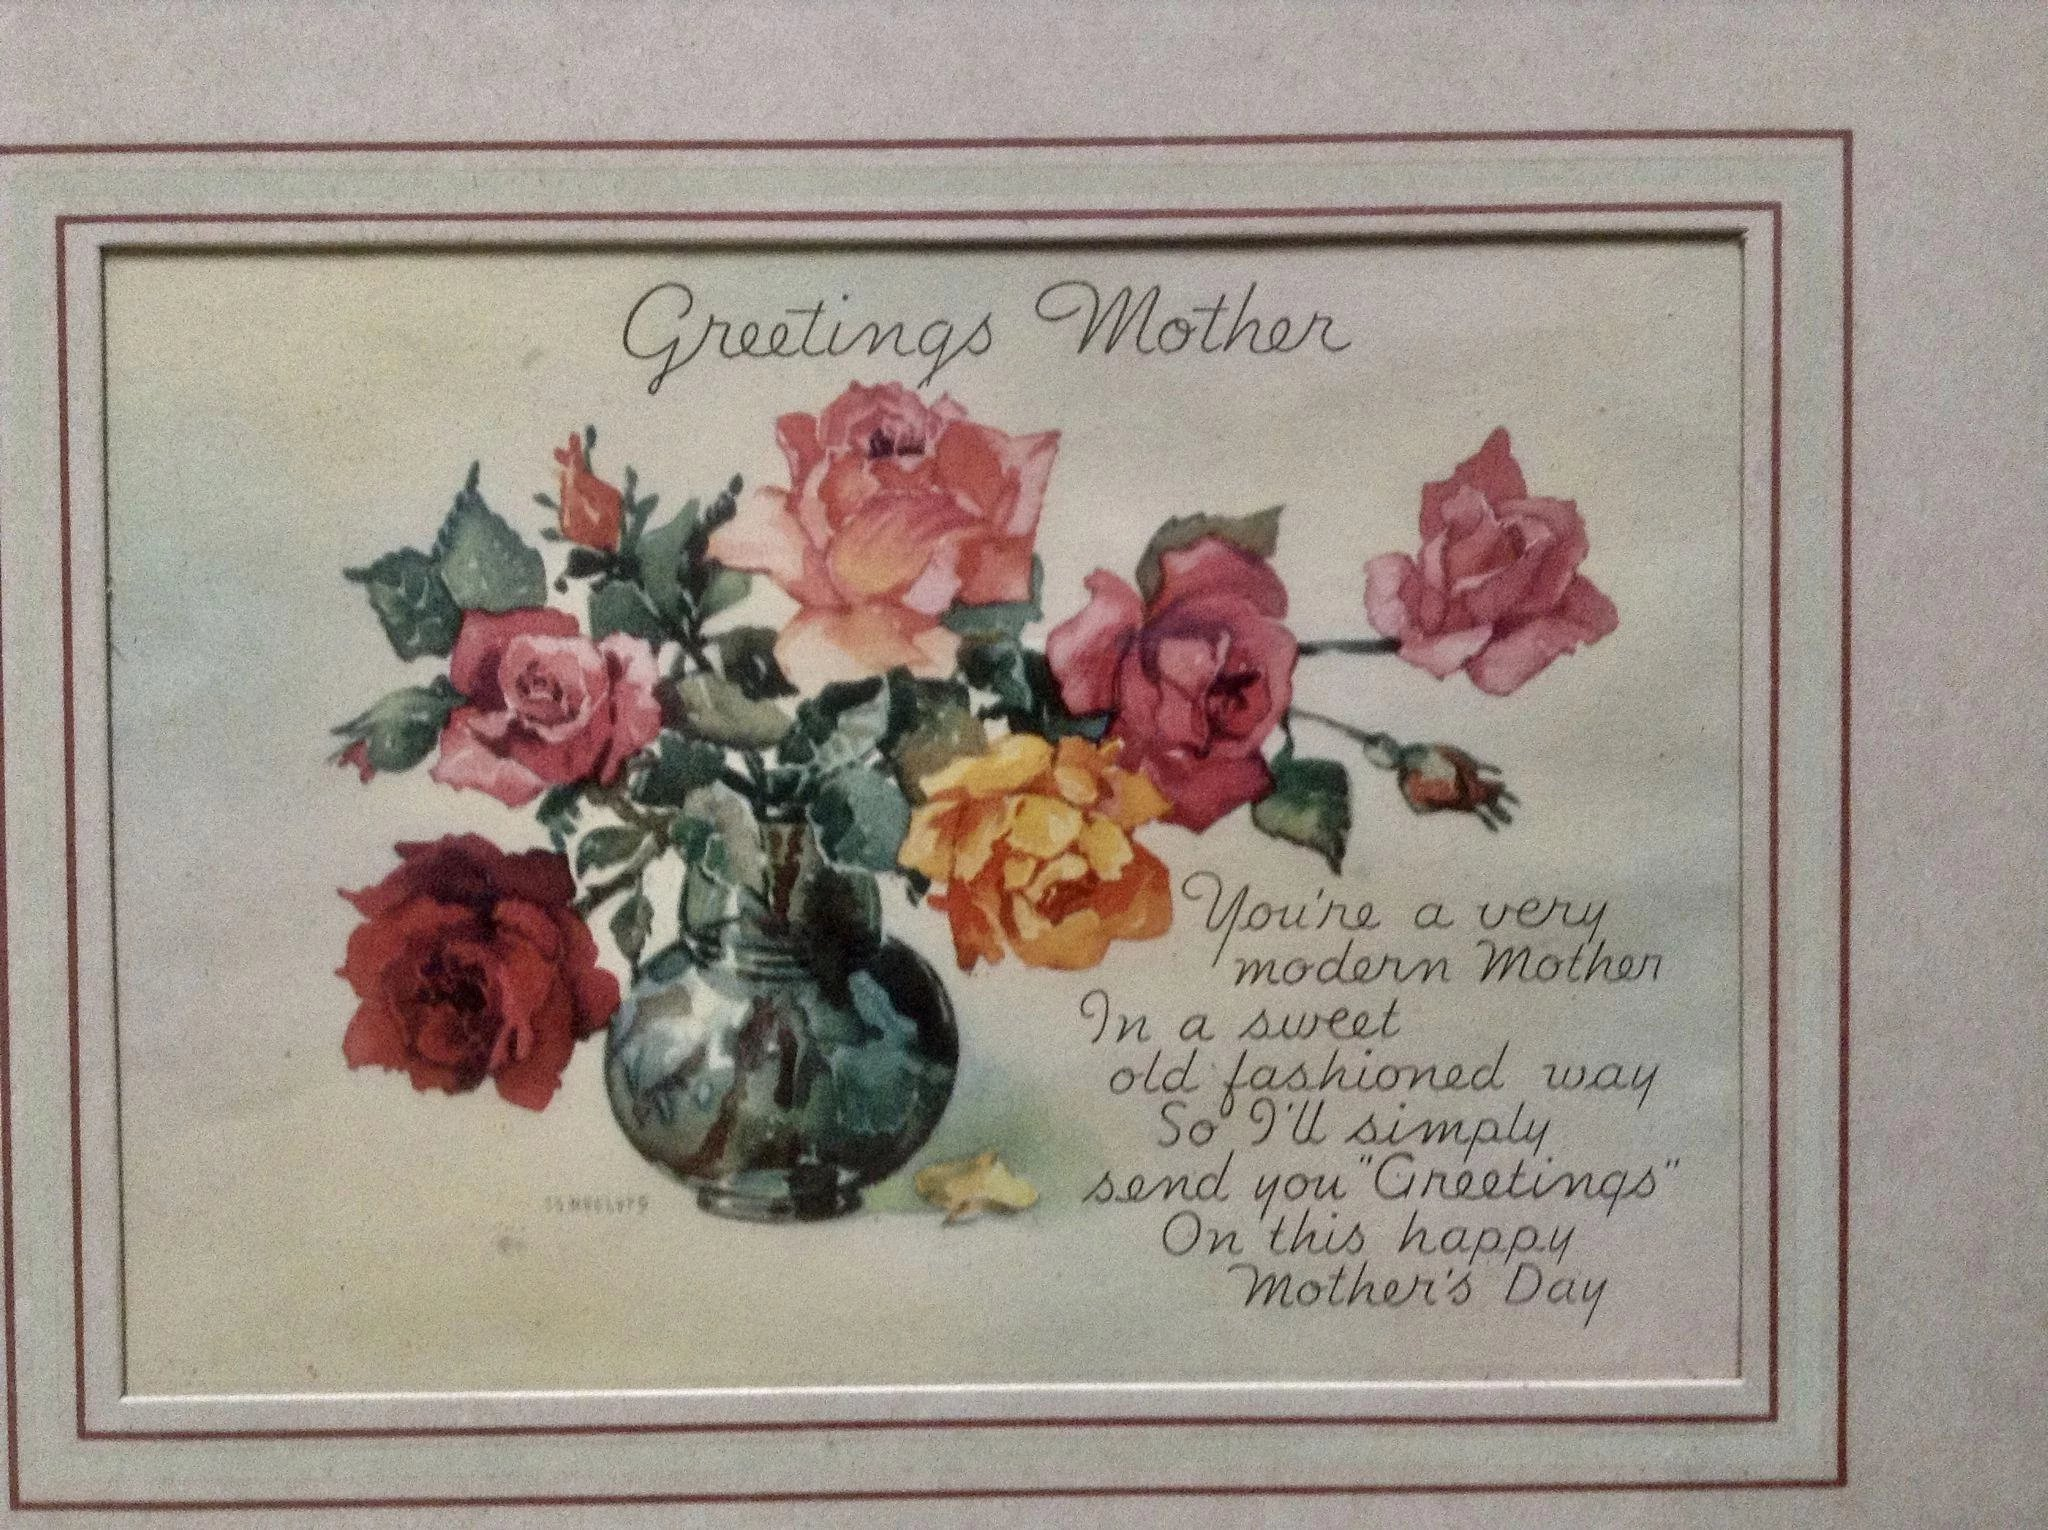 Vintage 1950s Greetings Mothers Day Floral Poem Print Picture